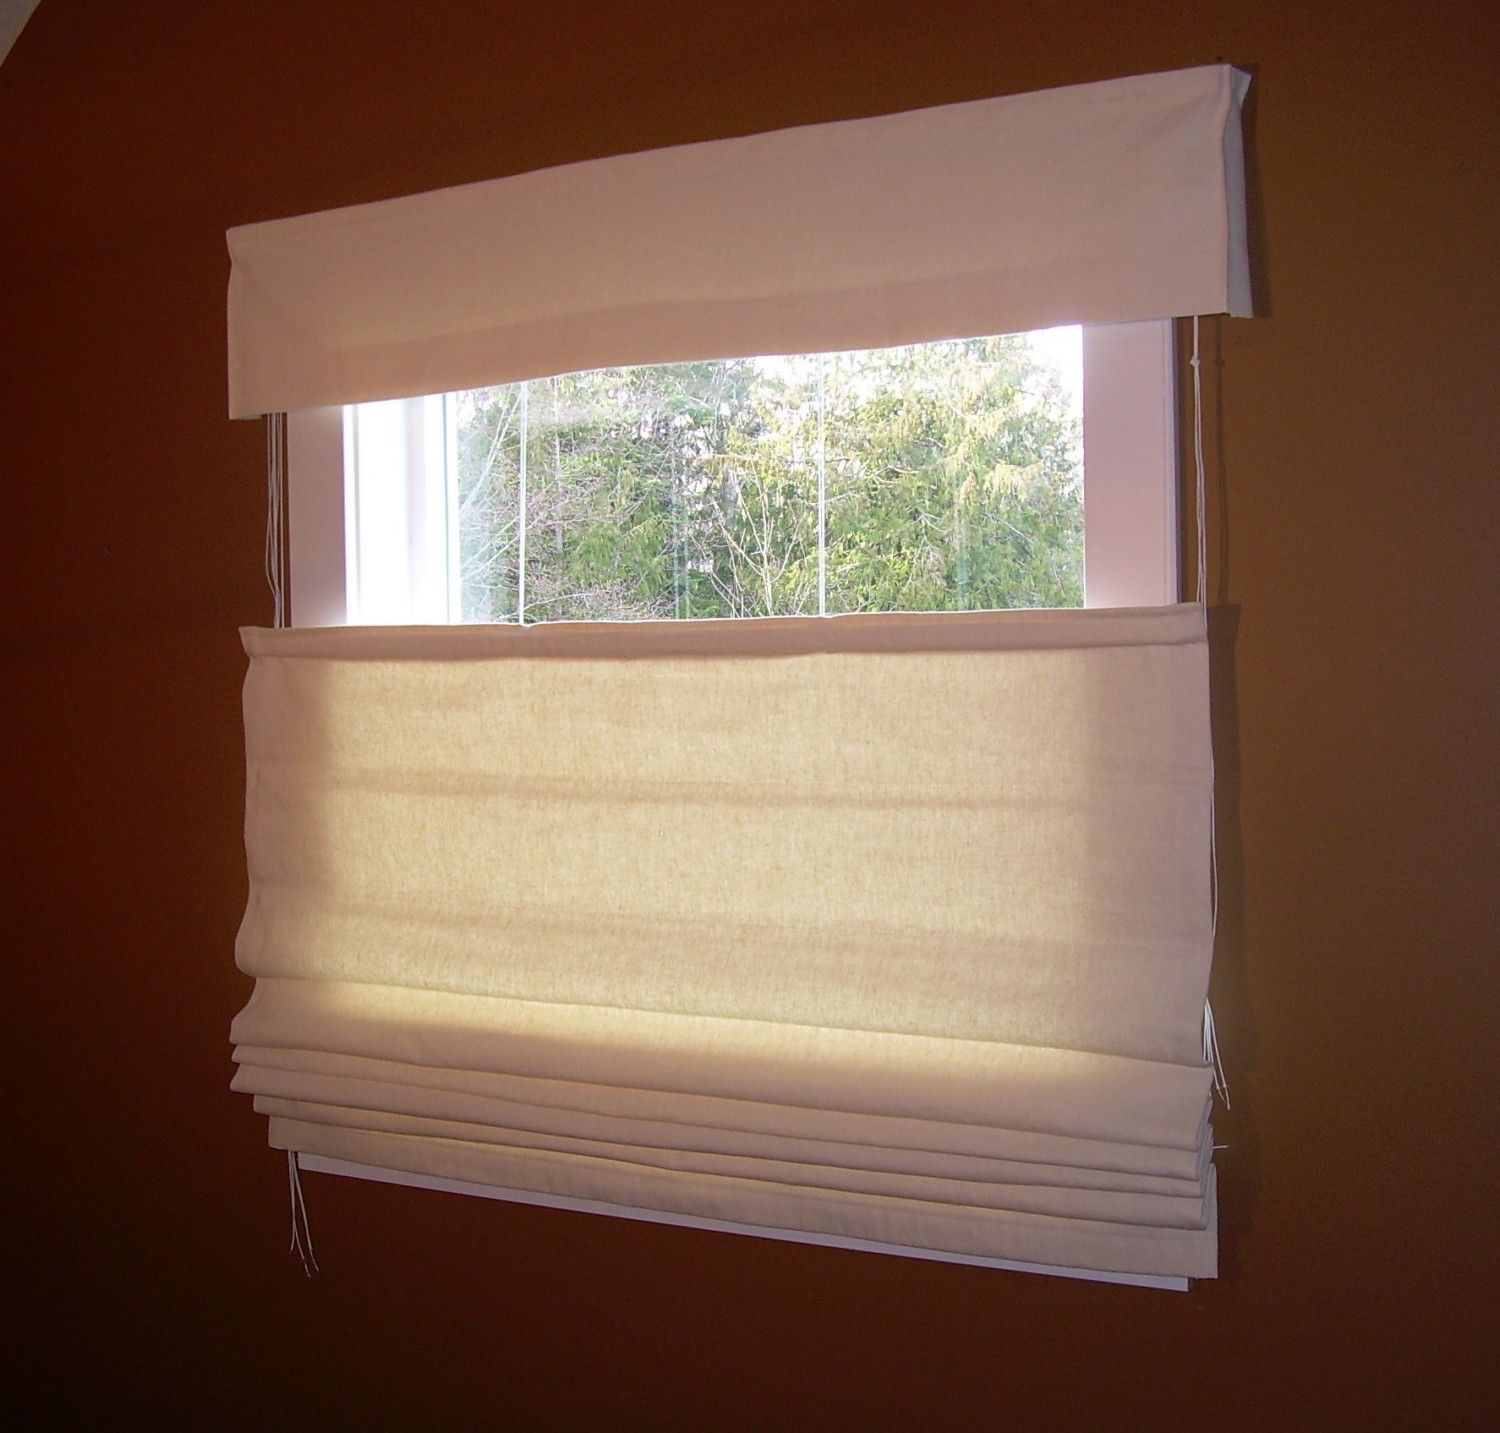 Where To Buy Roman Shades Top Down Bottom Up Roman Shades Organic Blinds 205 00